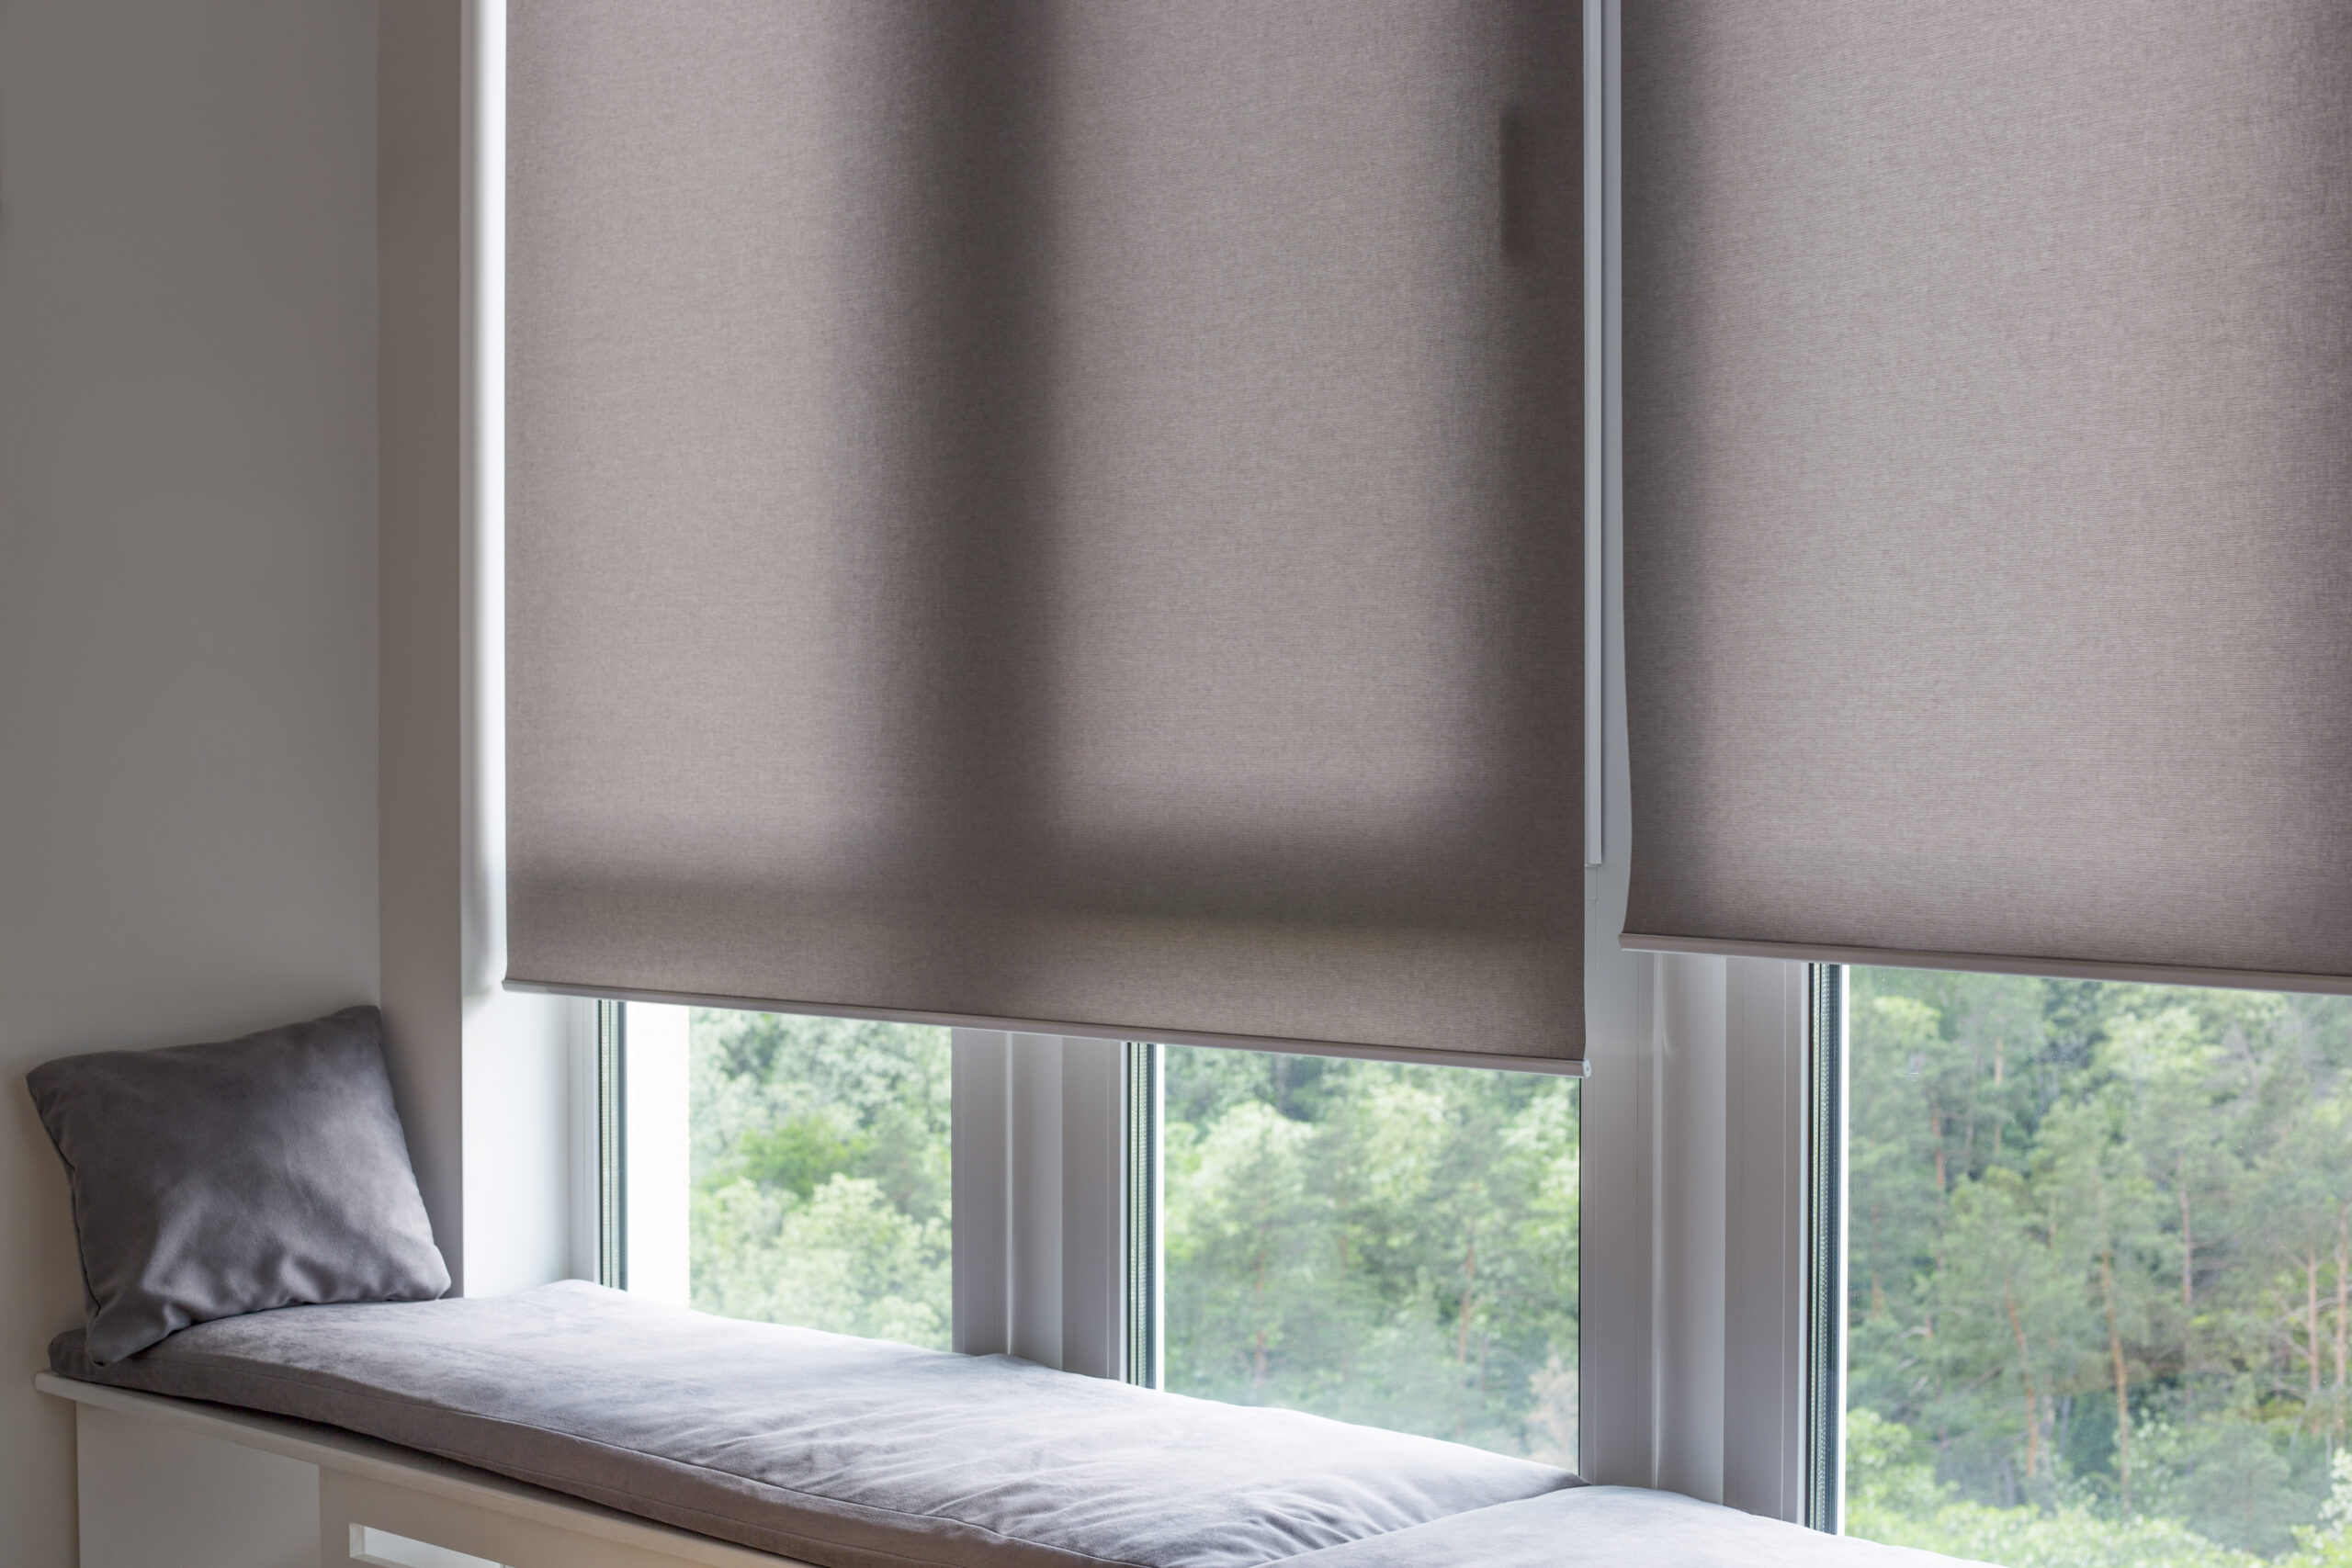 8 Tips And Tricks To Cleaning Your Blinds